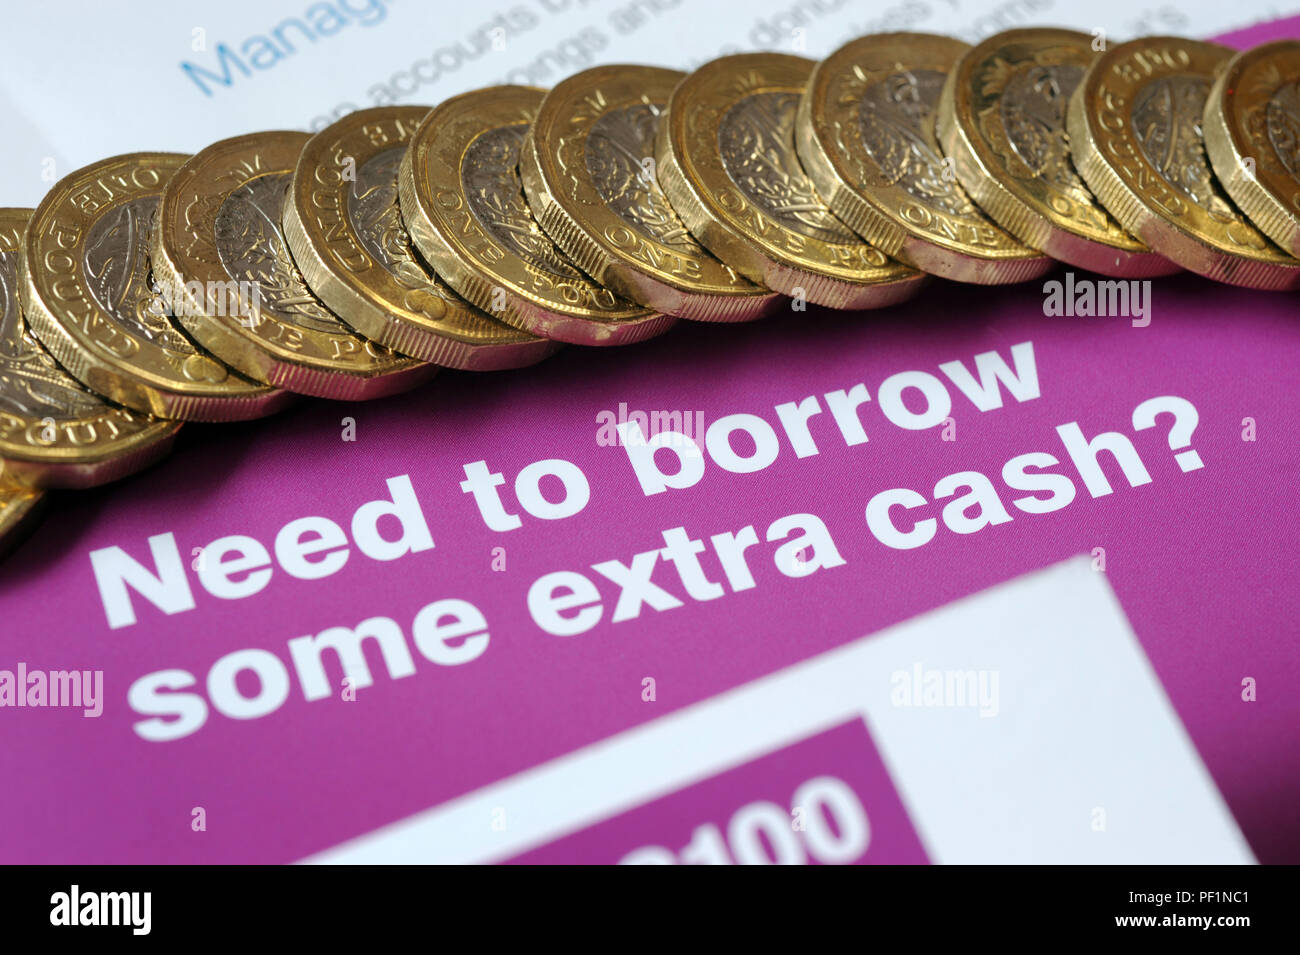 LOAN LEAFLETS WITH ONE POUND COINS RE BORROWING SHORT TERM LOANS PAYDAY APR EXTRA CASH UK - Stock Image